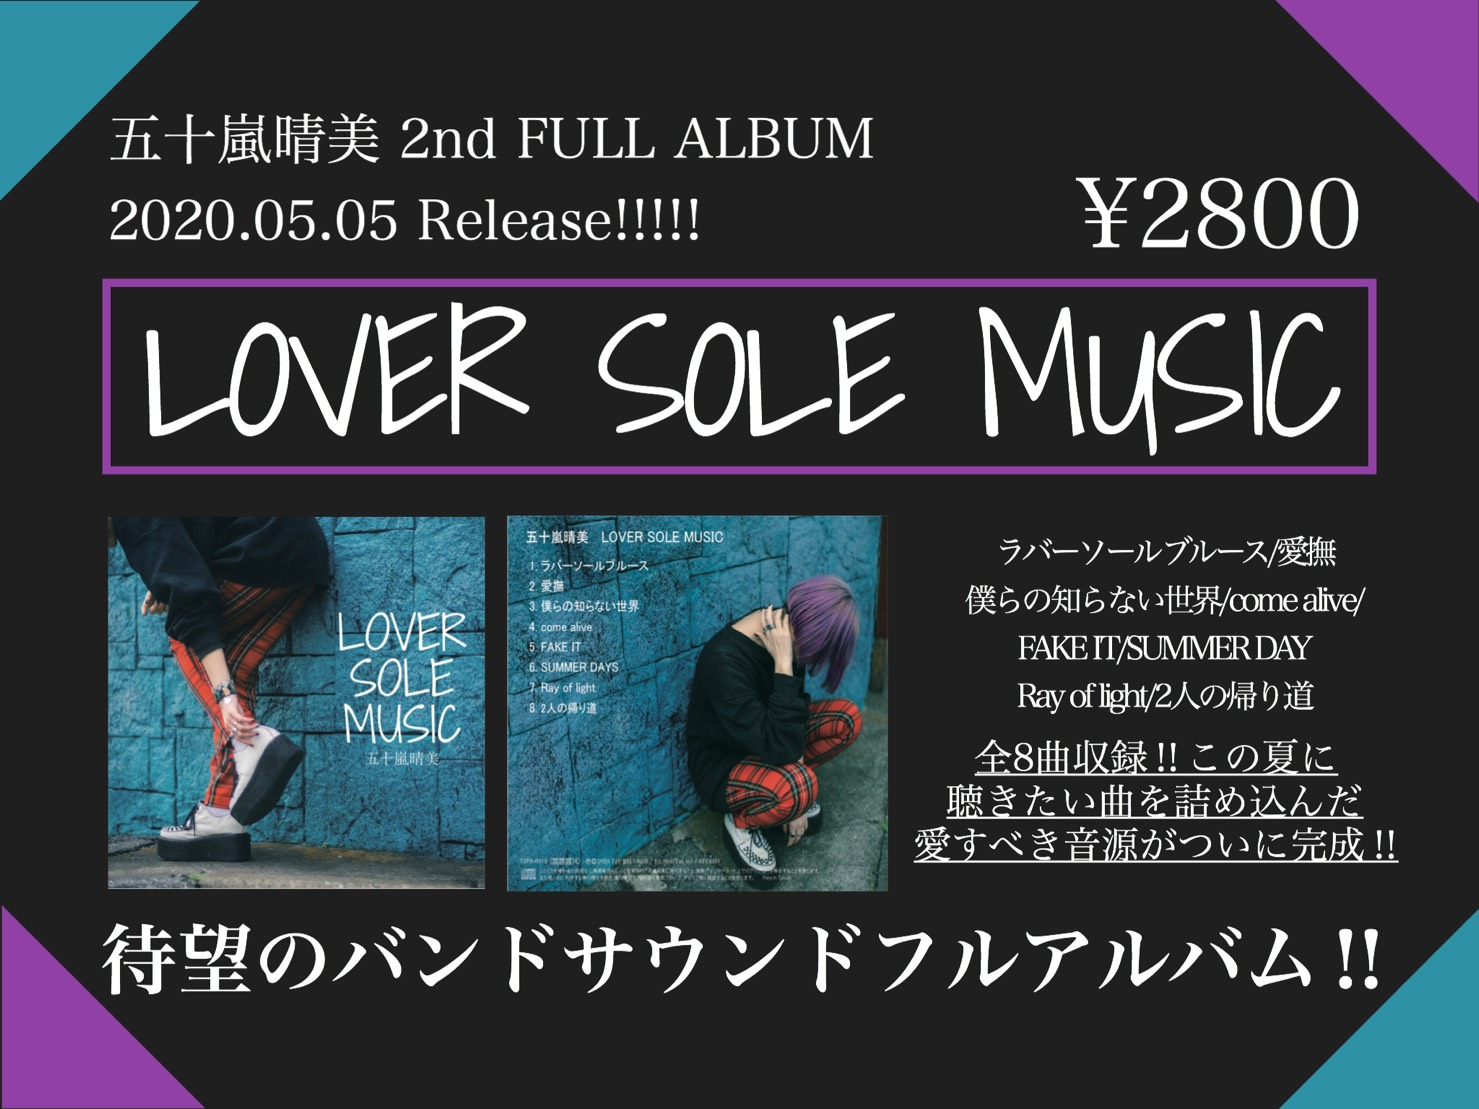 LOVER_SOLE_MUSIC